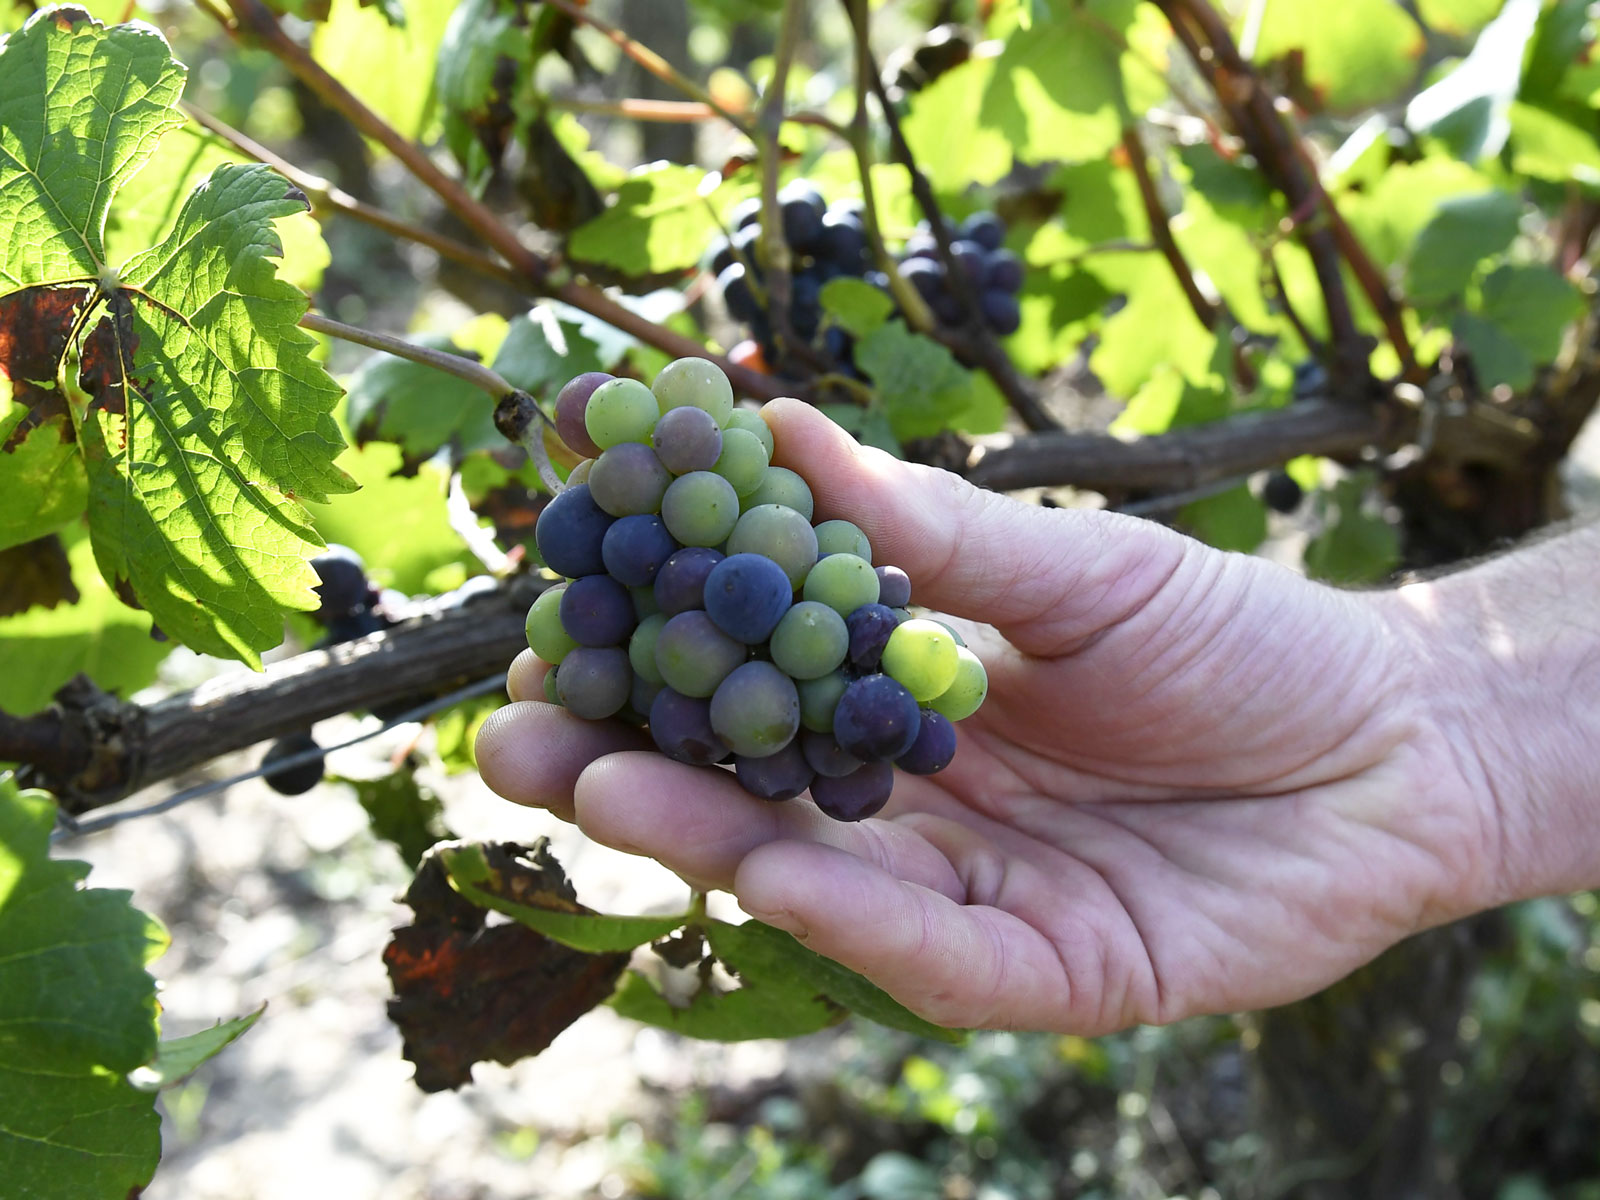 france-grapes-climate-change-FT-BLOG1118.jpg